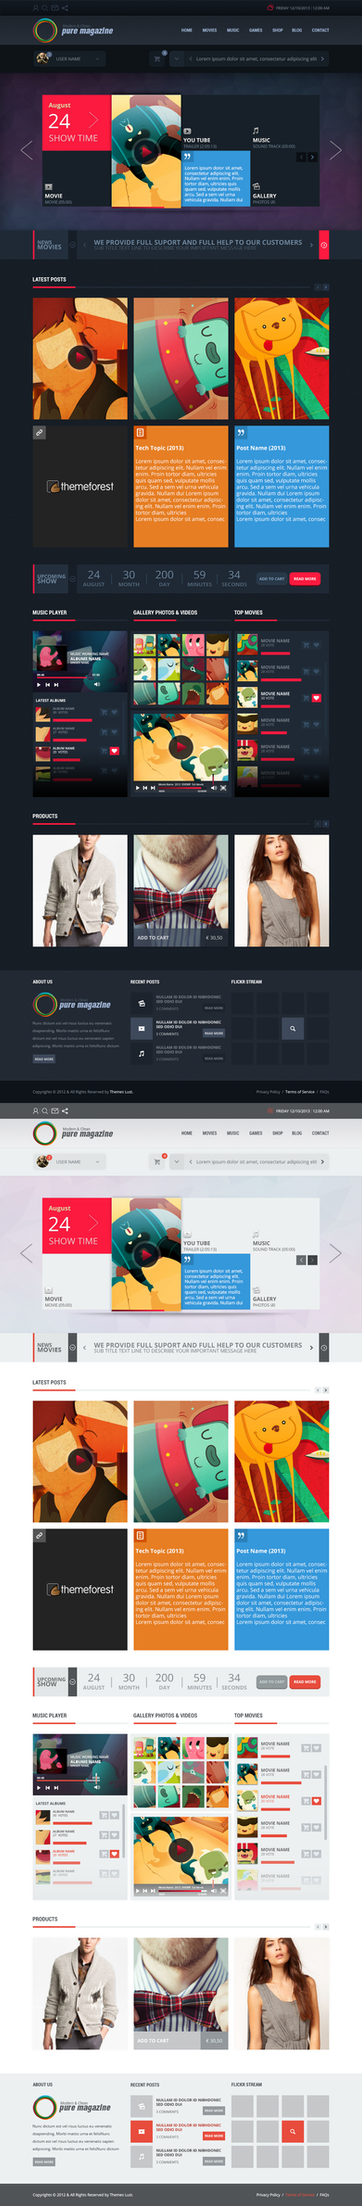 Pure Magazine: News/Blog/Shop HTML5/CSS3 Theme by gohawise